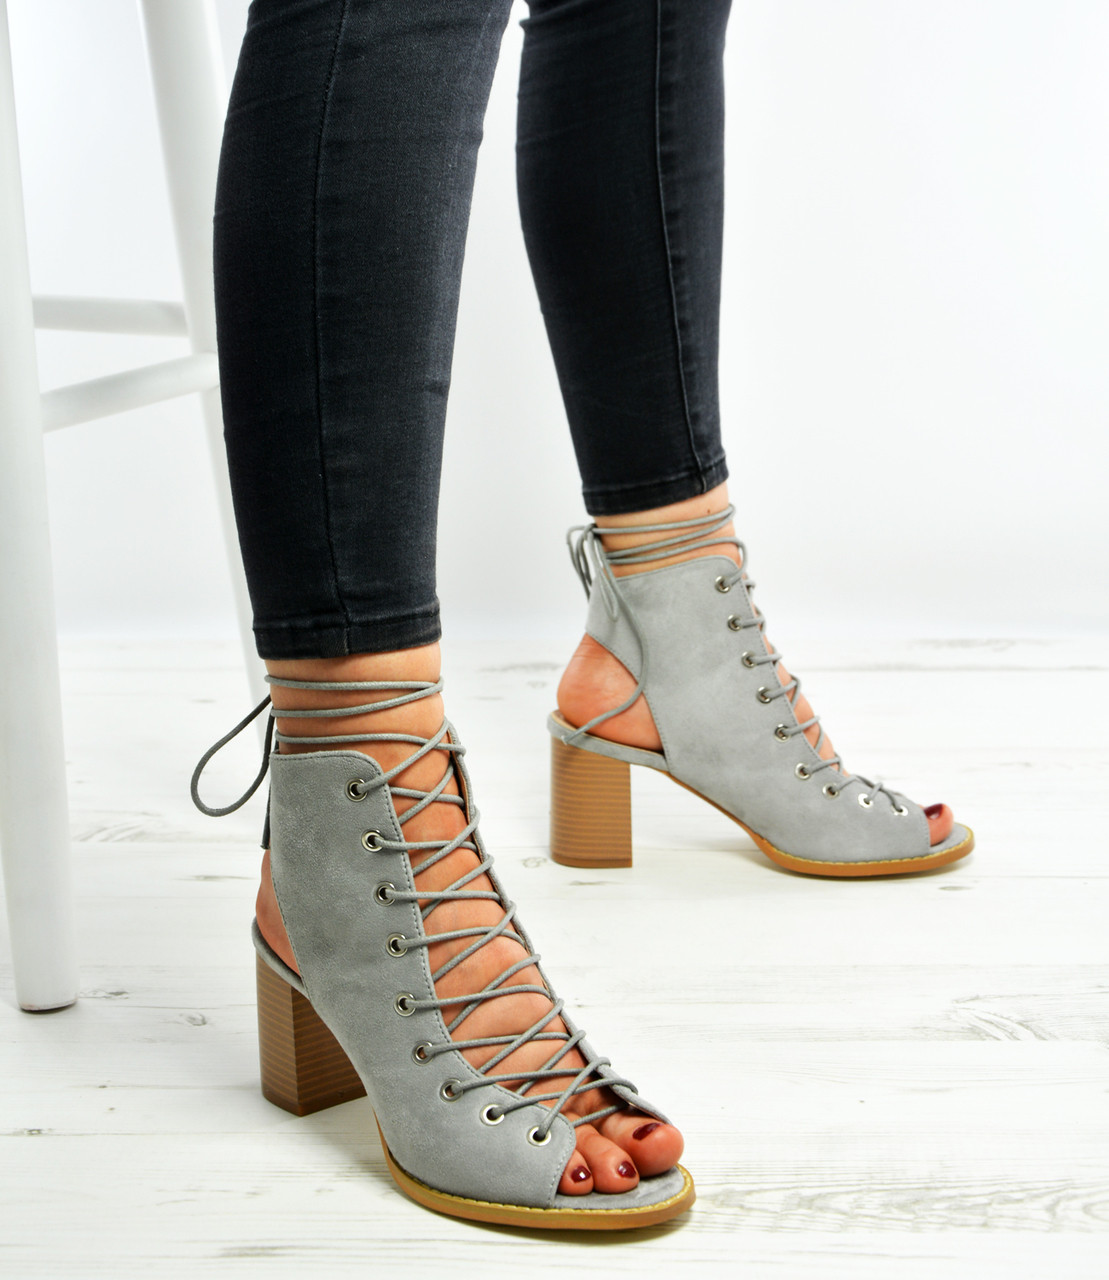 fcd8ba5f462 New Womens Ladies Lace Up Grey Sandals High Block Heels Shoes Size Uk 3-8